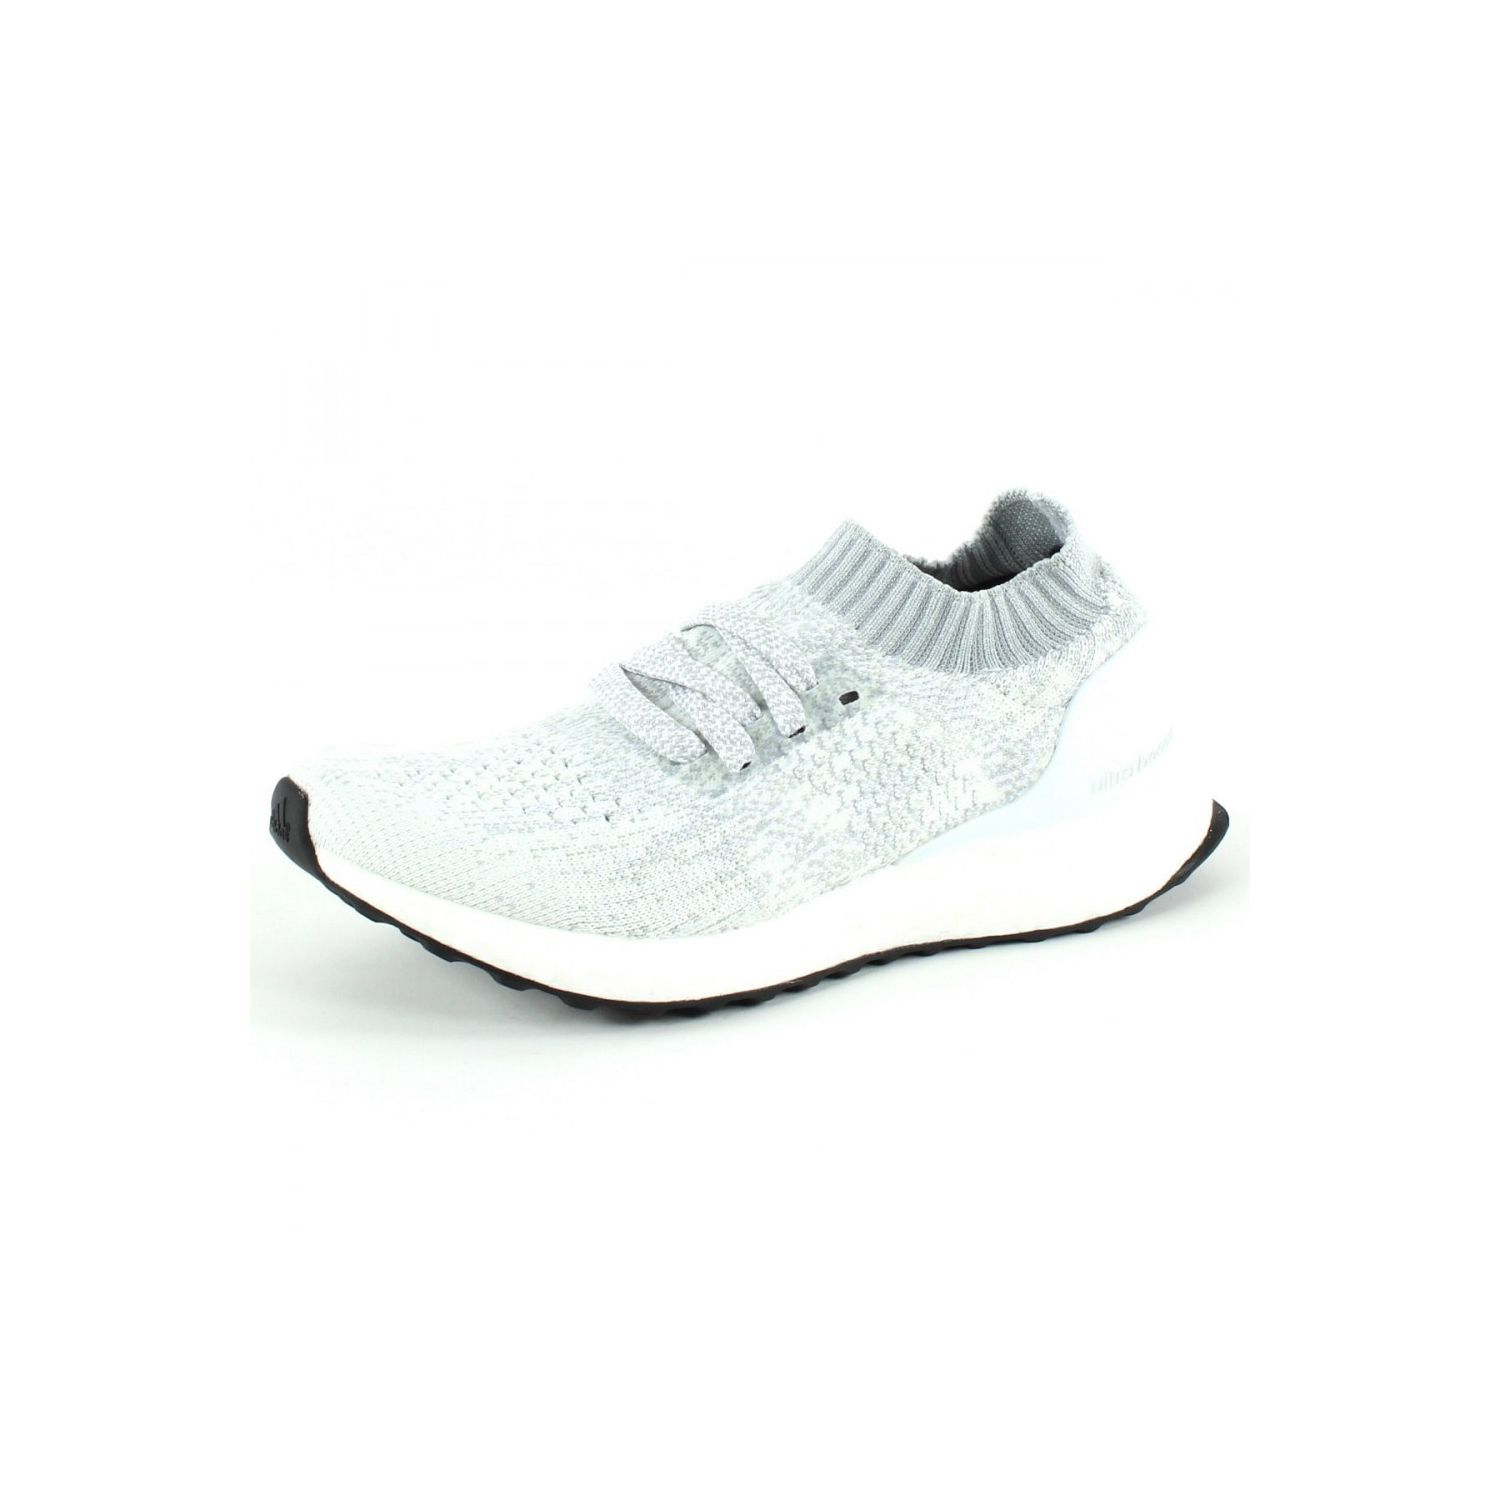 Adidas performance - Chaussures de Running Ultraboost Uncaged Junior Blanc - pas cher Achat / Vente Chaussures running